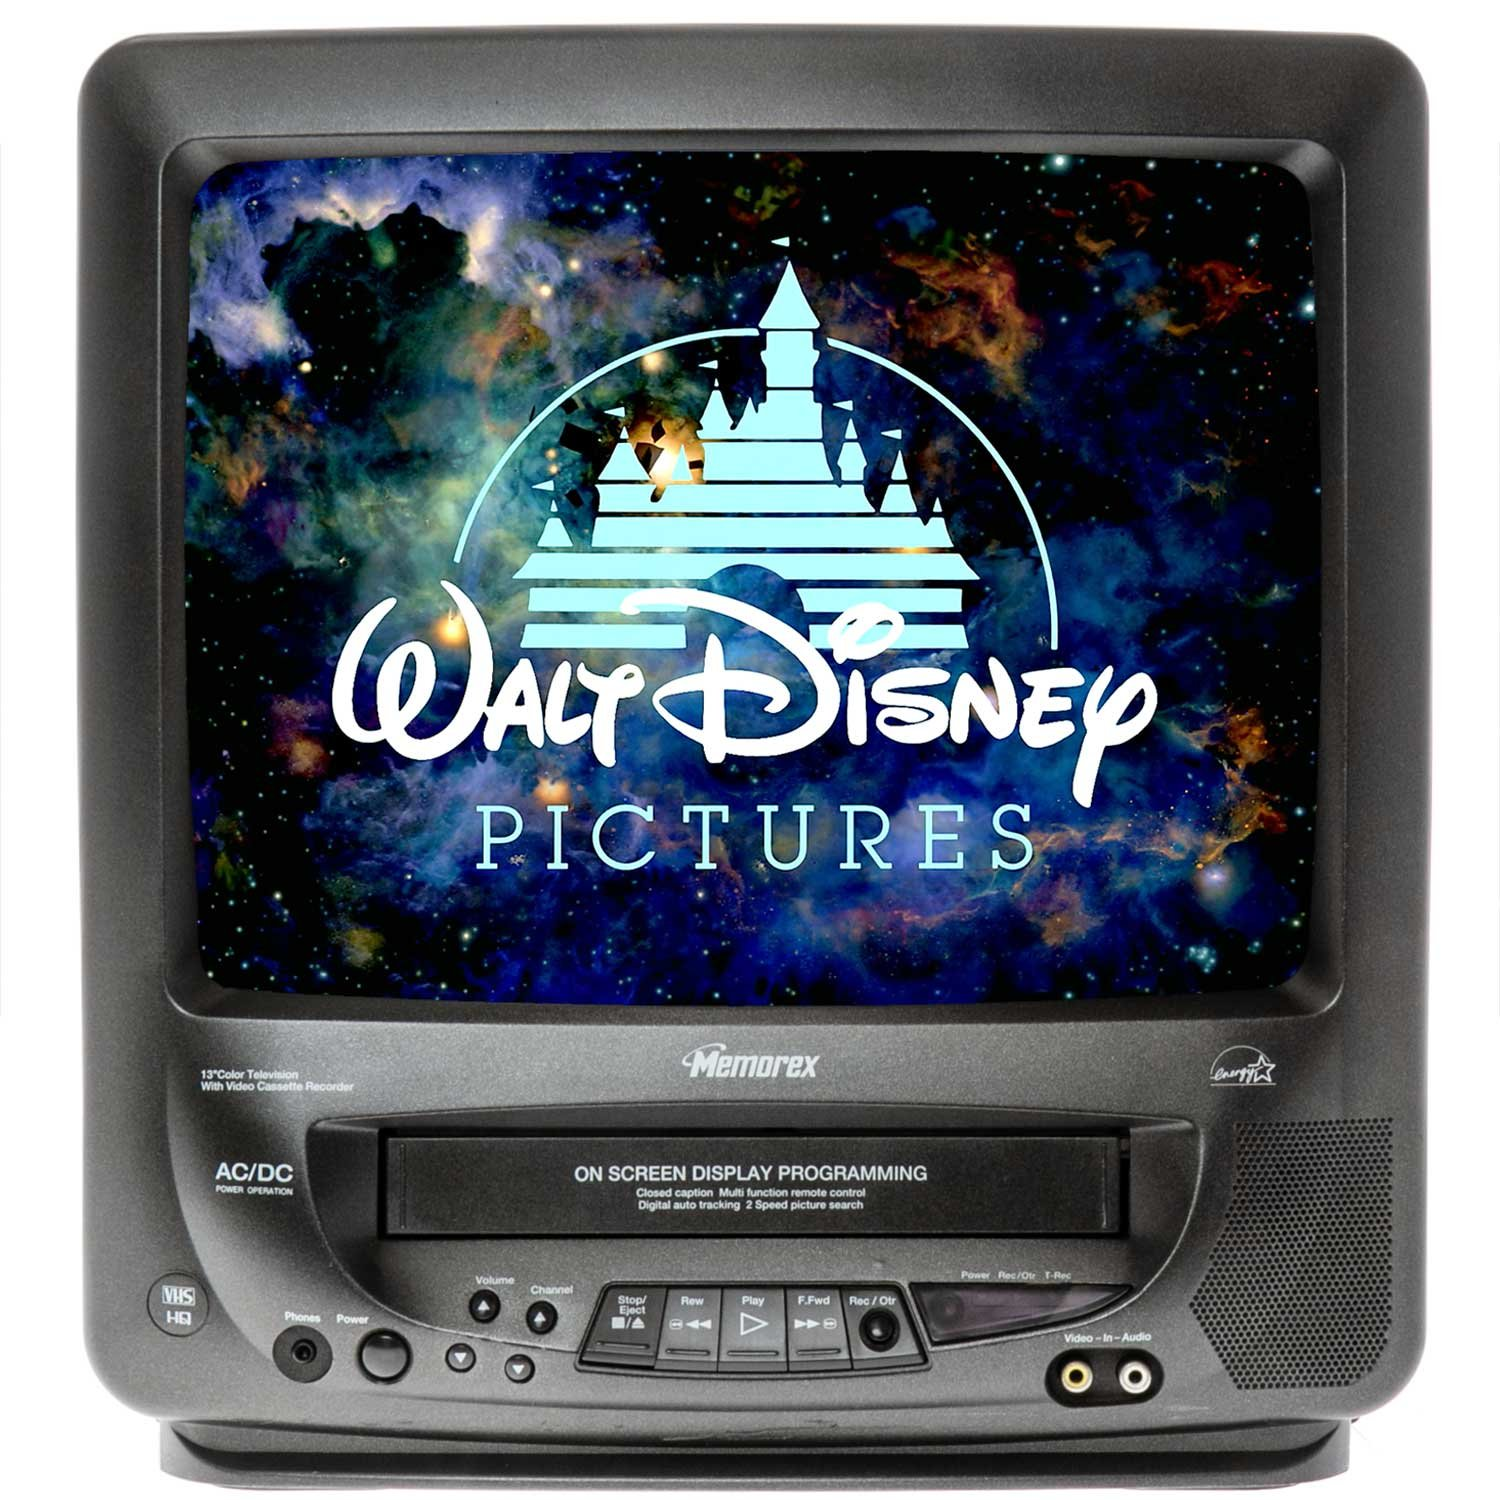 Cheap Vcr Tv Combo, find Vcr Tv Combo deals on line at Alibaba.com